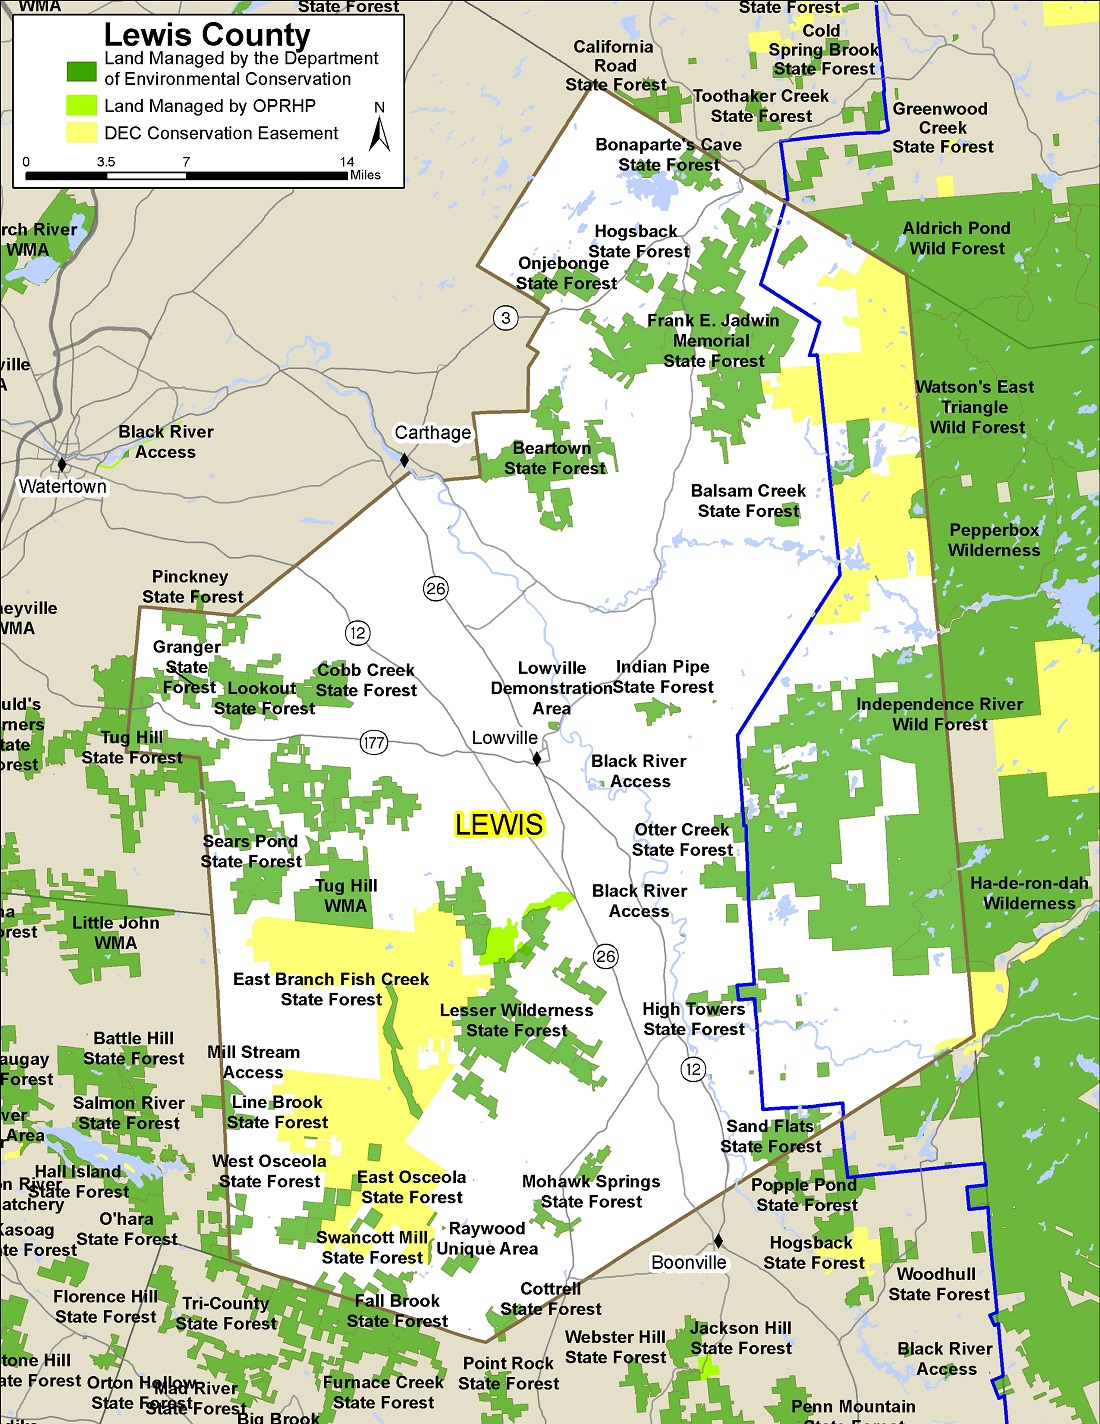 Lewis County Map - NYS Dept. of Environmental Conservation